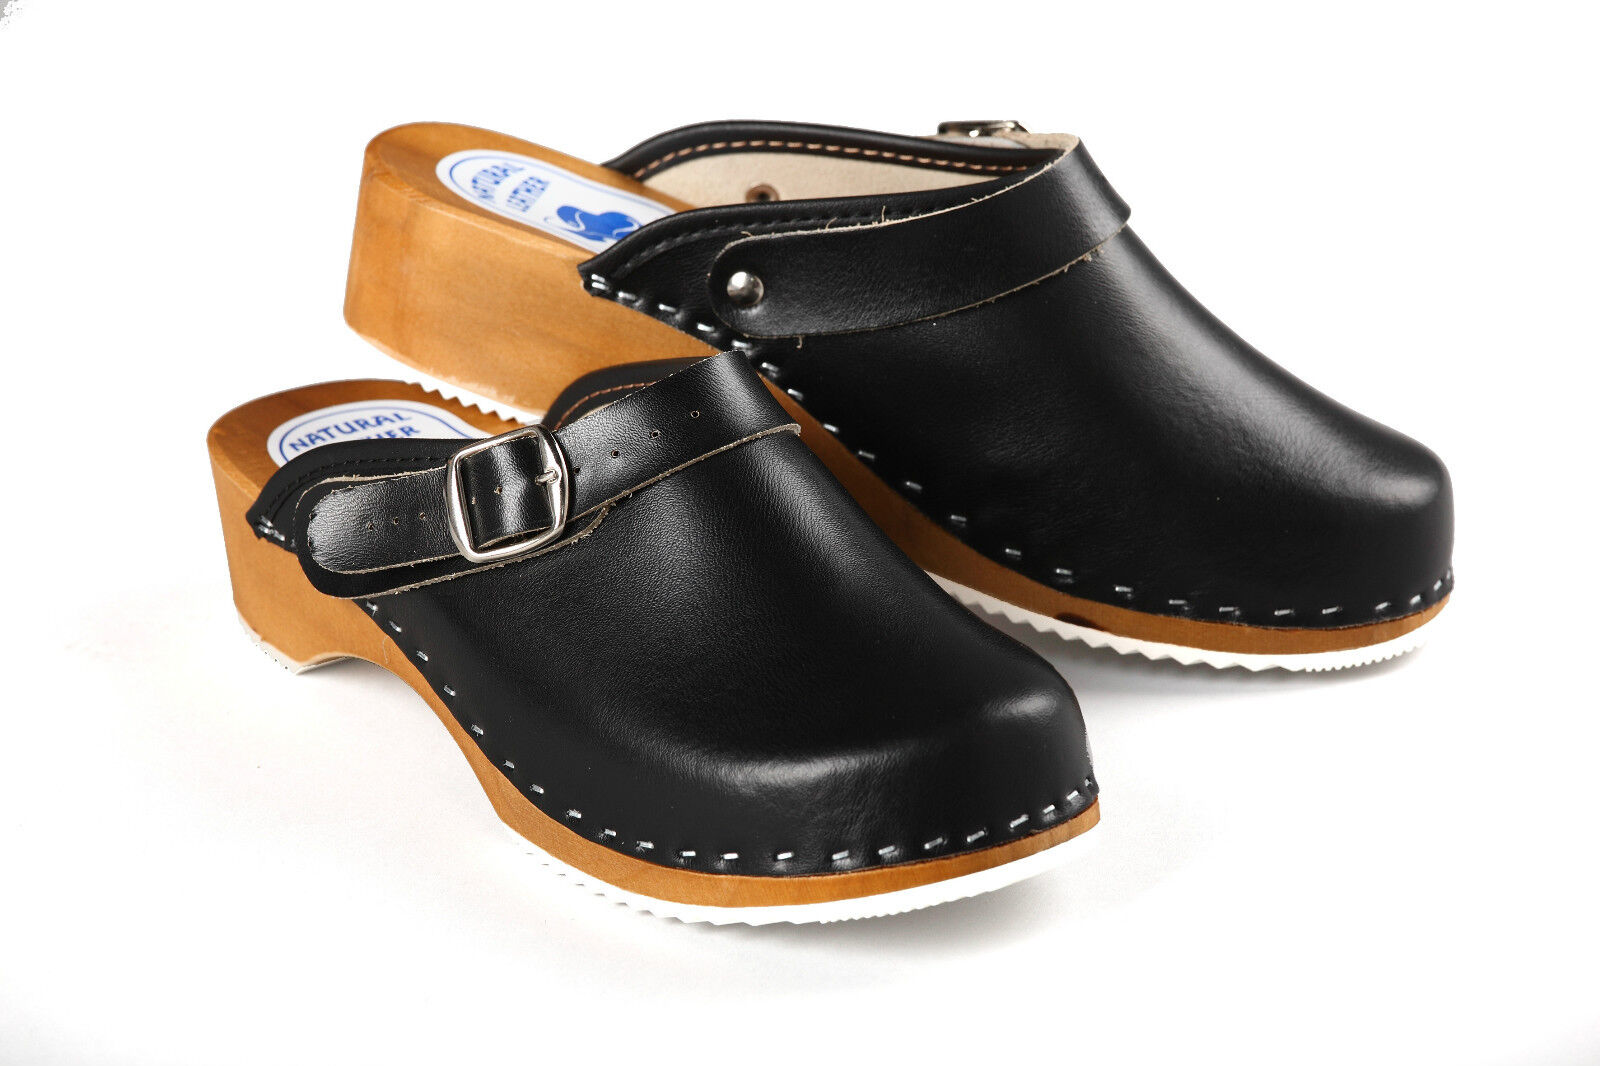 shoes for work in the kitchen blue rug womens clogs garden hospital ladies slip on